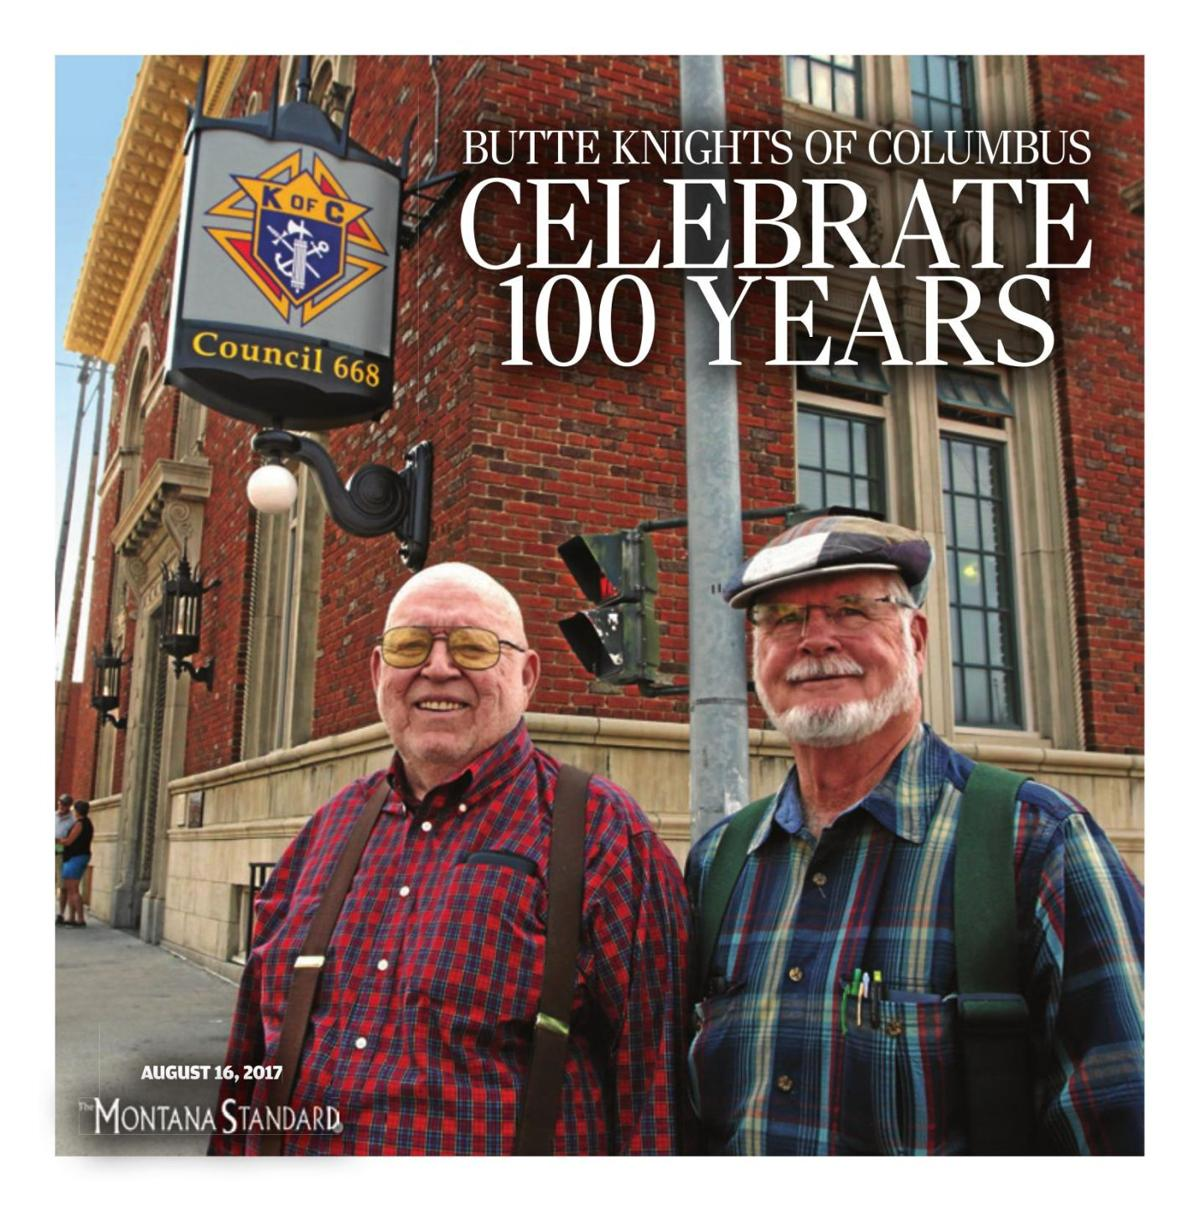 Butte Knights of Columbus Celebrate 100 Years